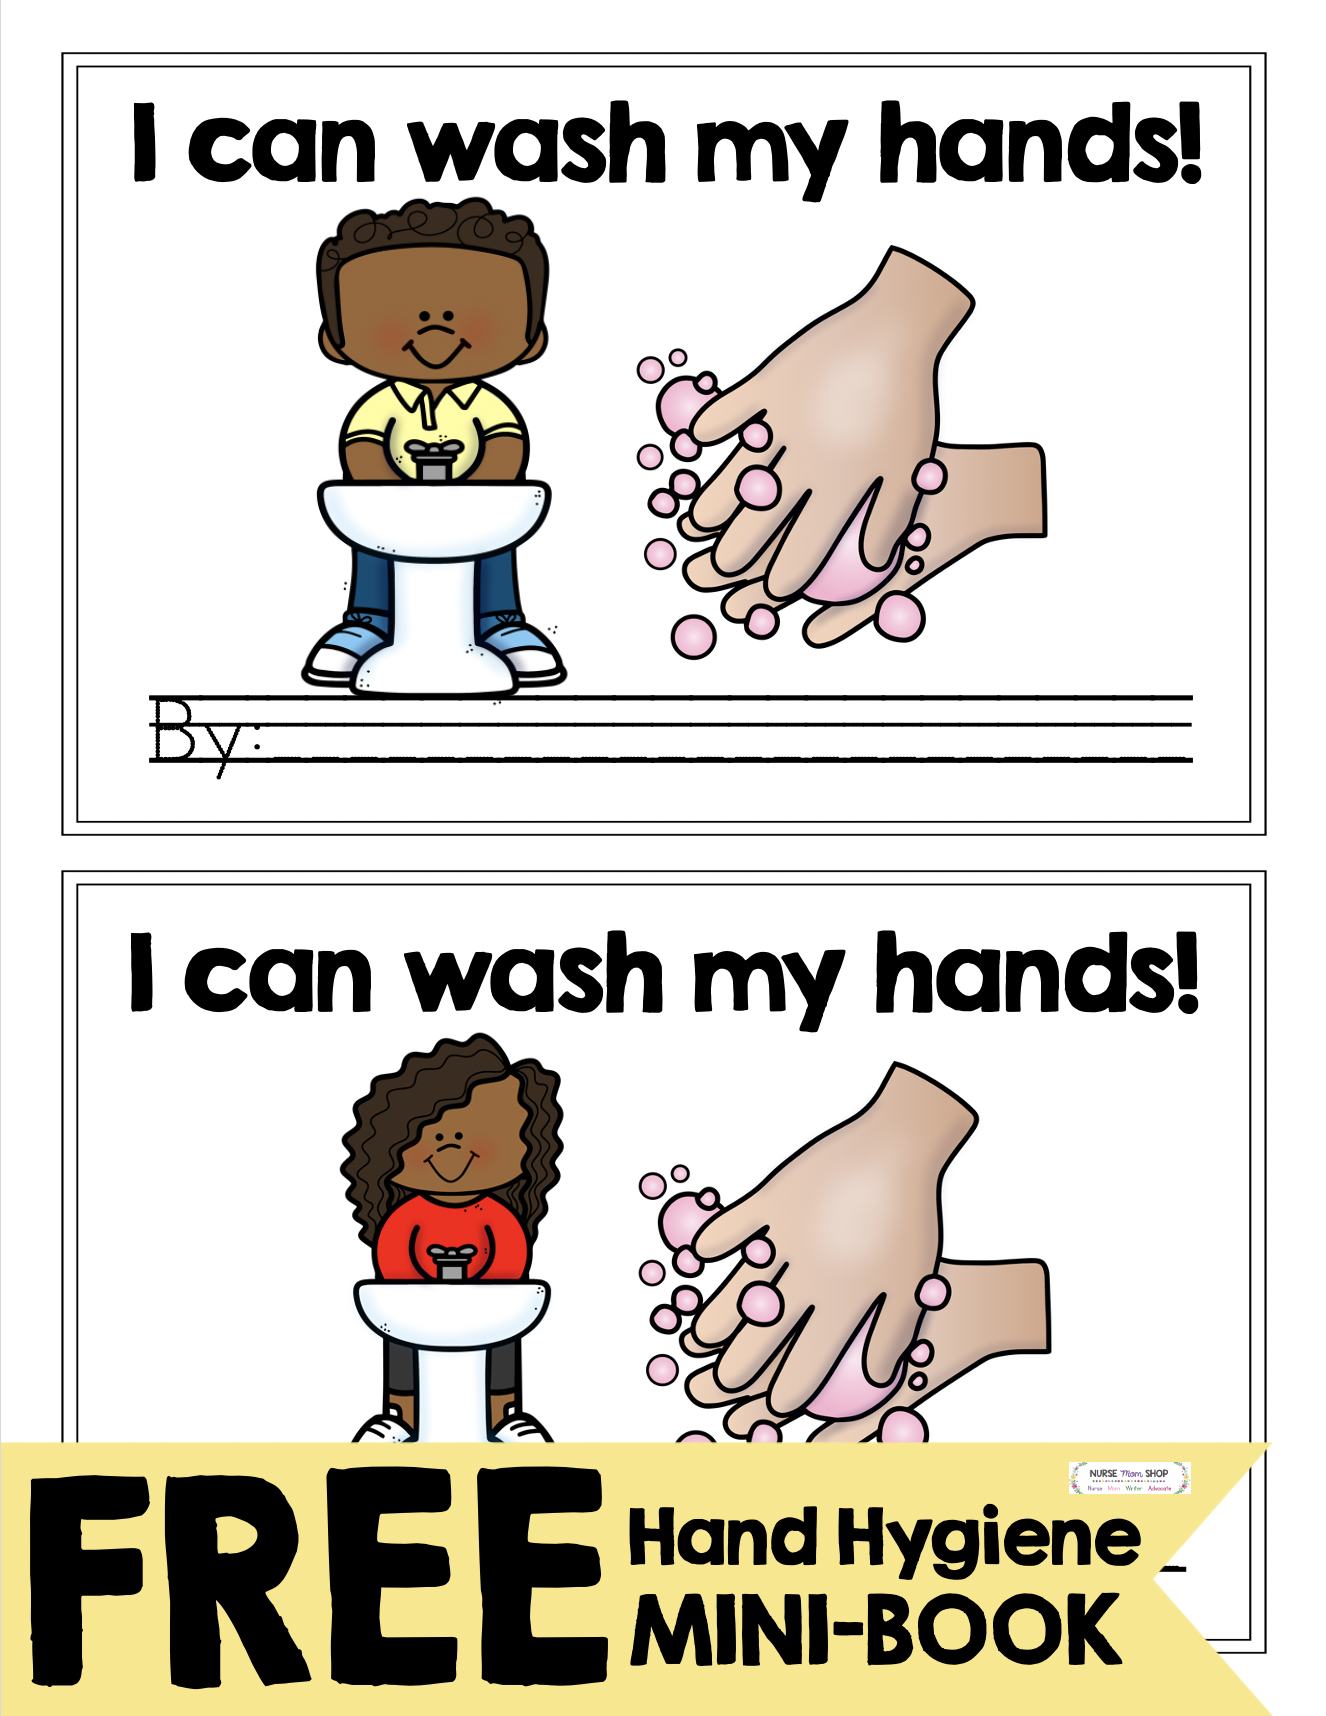 Free Health And Hand Hygiene Mini Book And Printables In